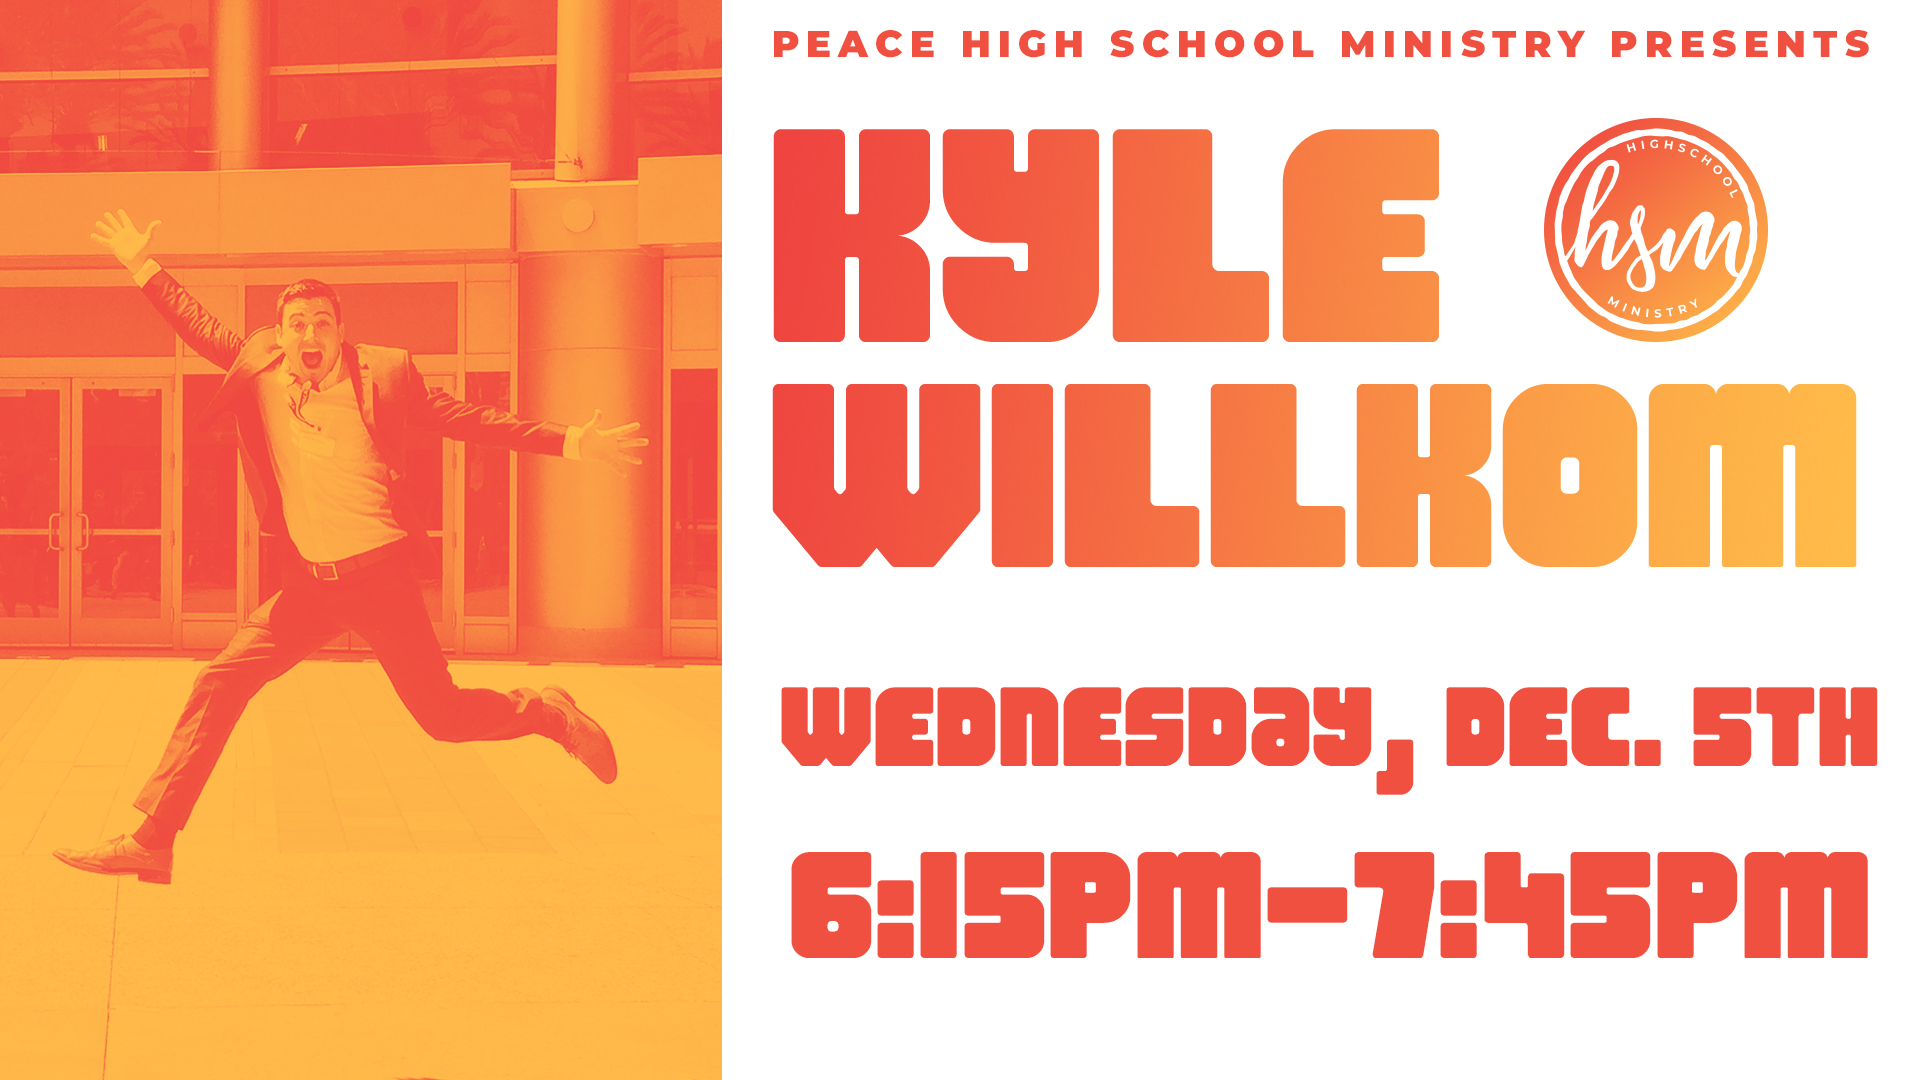 Be A Hero.  Bryan's brother Kyle is a professional speaker and travels the country inspiring teenagers with positives messages. Kyle will be speaking to Peace 6-12 graders on Wednesday, Dec. 5th at 6:15pm about what it takes to truly be a hero. This event is open to all teenagers. Don't miss it!   #beahero #herochallenge #kylewillkom  Learn more about Kyle here: www.kylewillkom.com